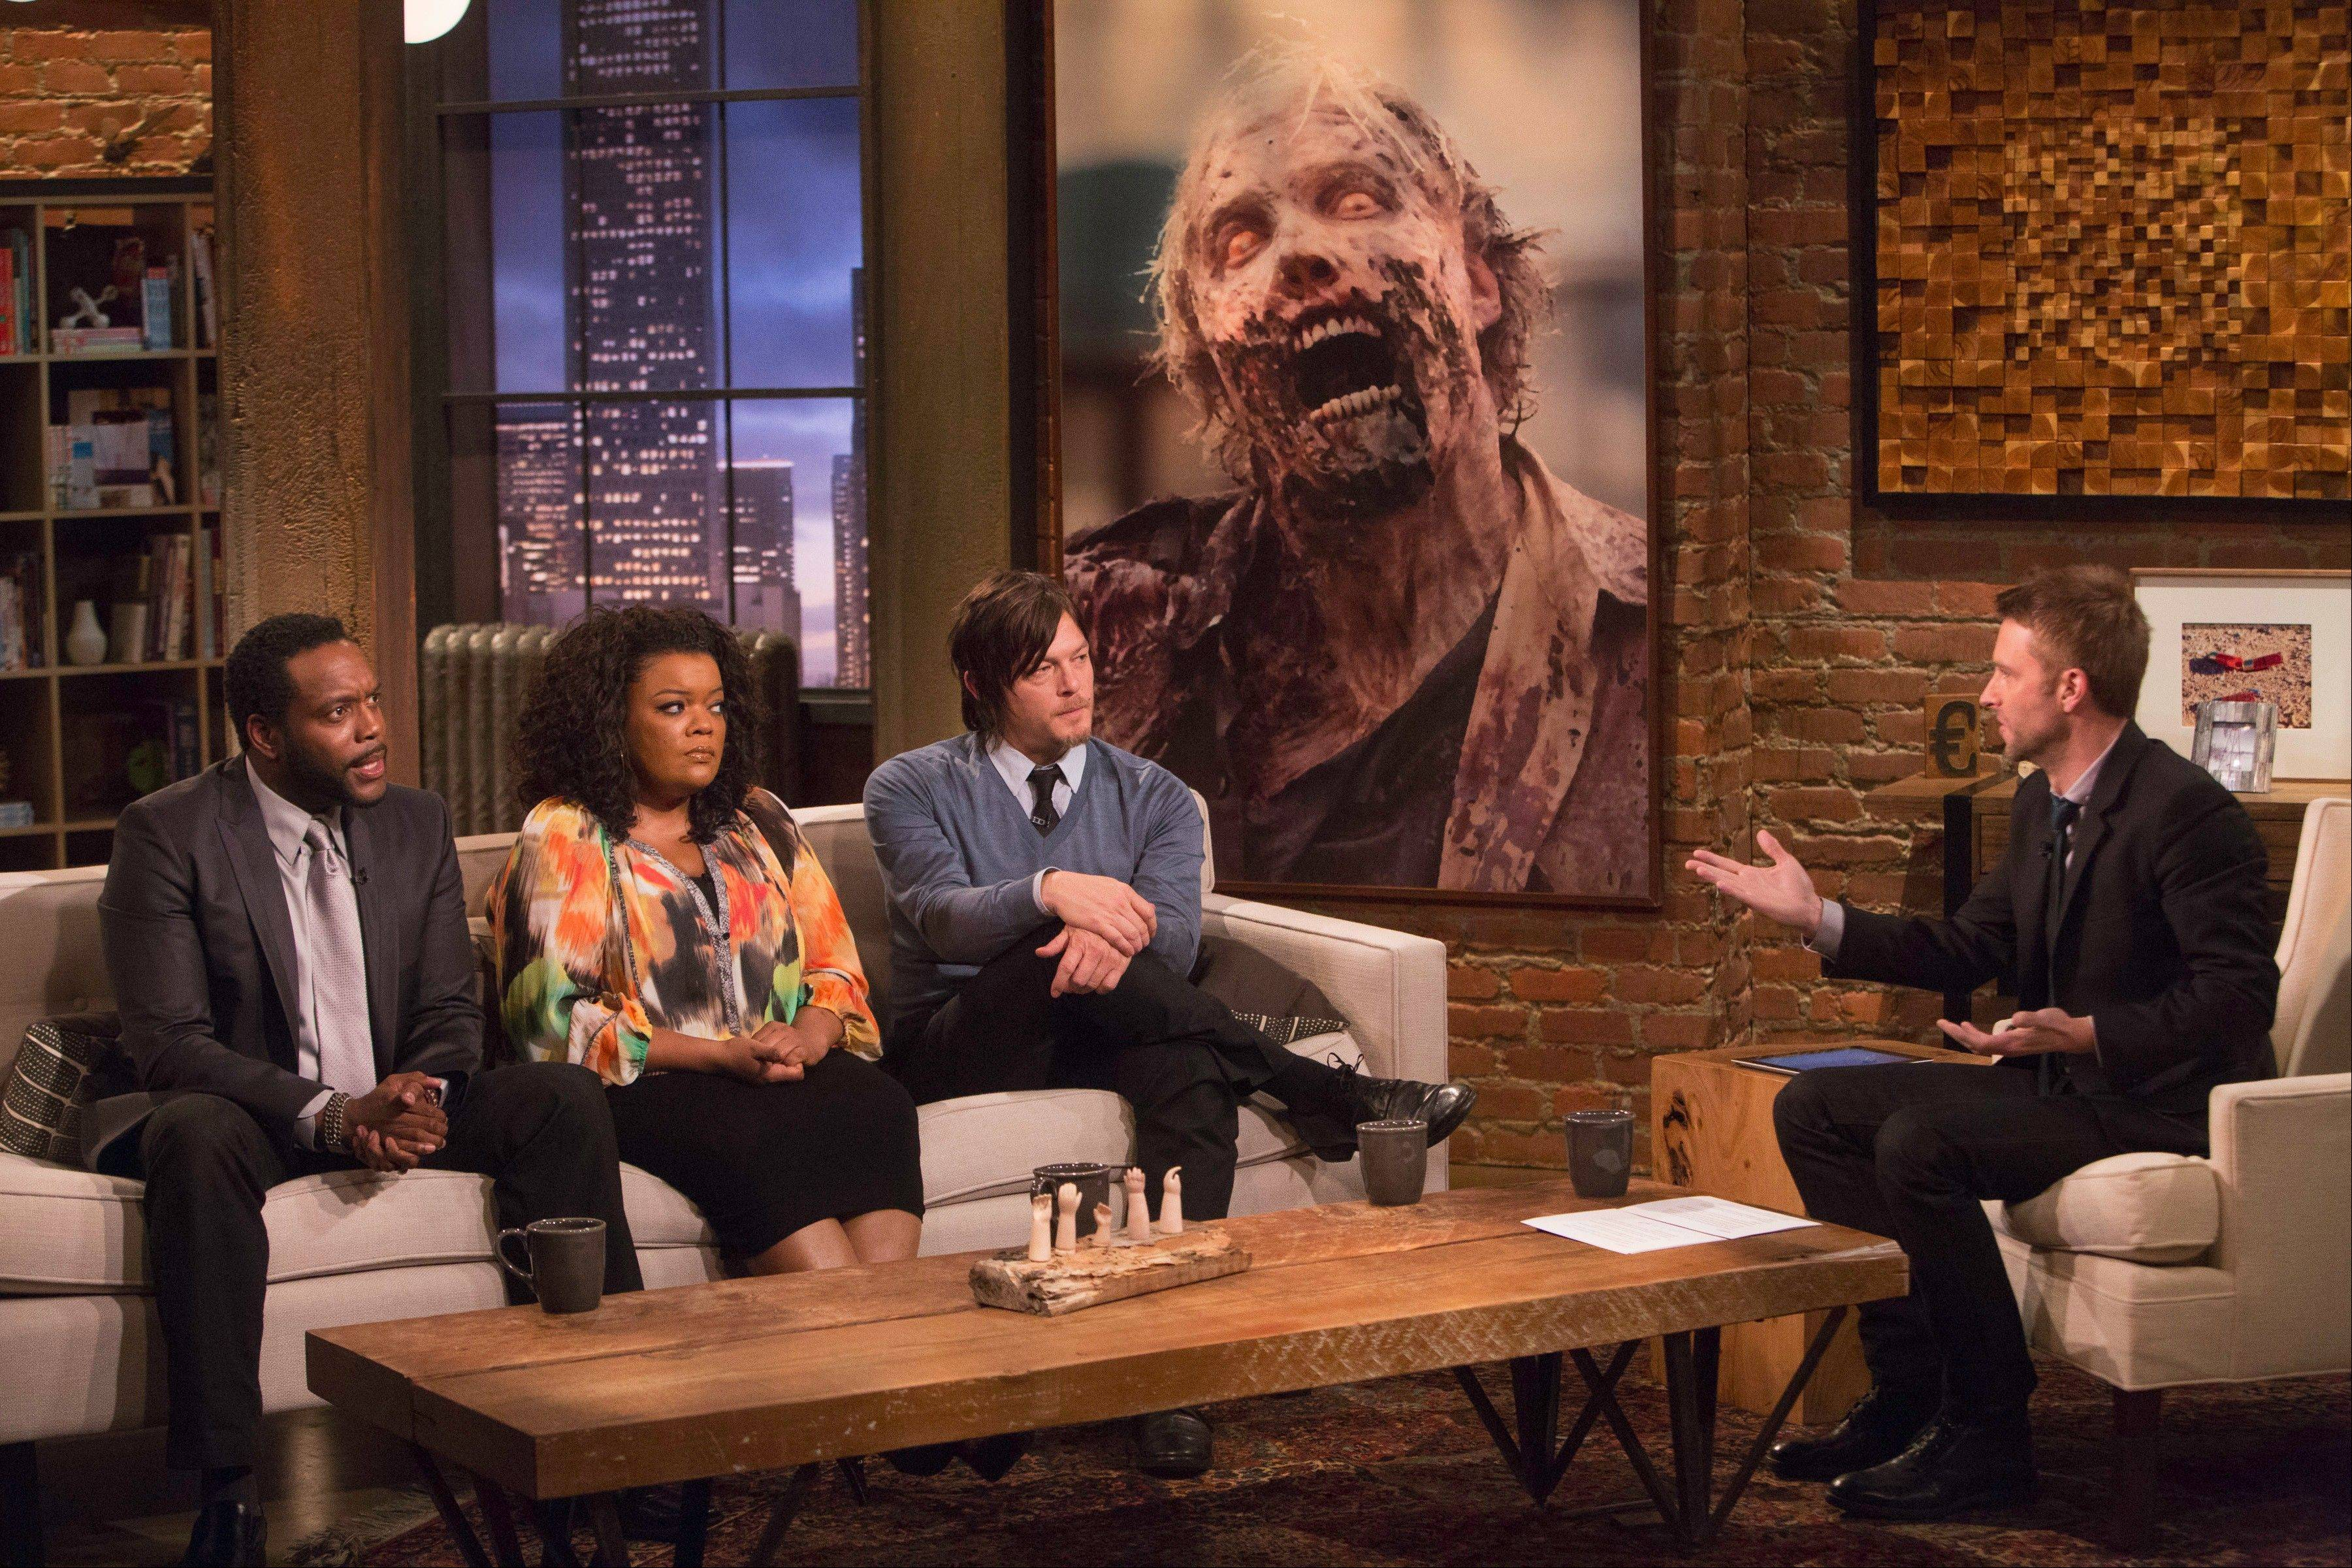 Host Chris Hardwick discusses episodes of AMC�s �Walking Dead� with guests like Chad Coleman, Yvette Nicole Brown and Norman Reedus in the aftershow �Talking Dead.�